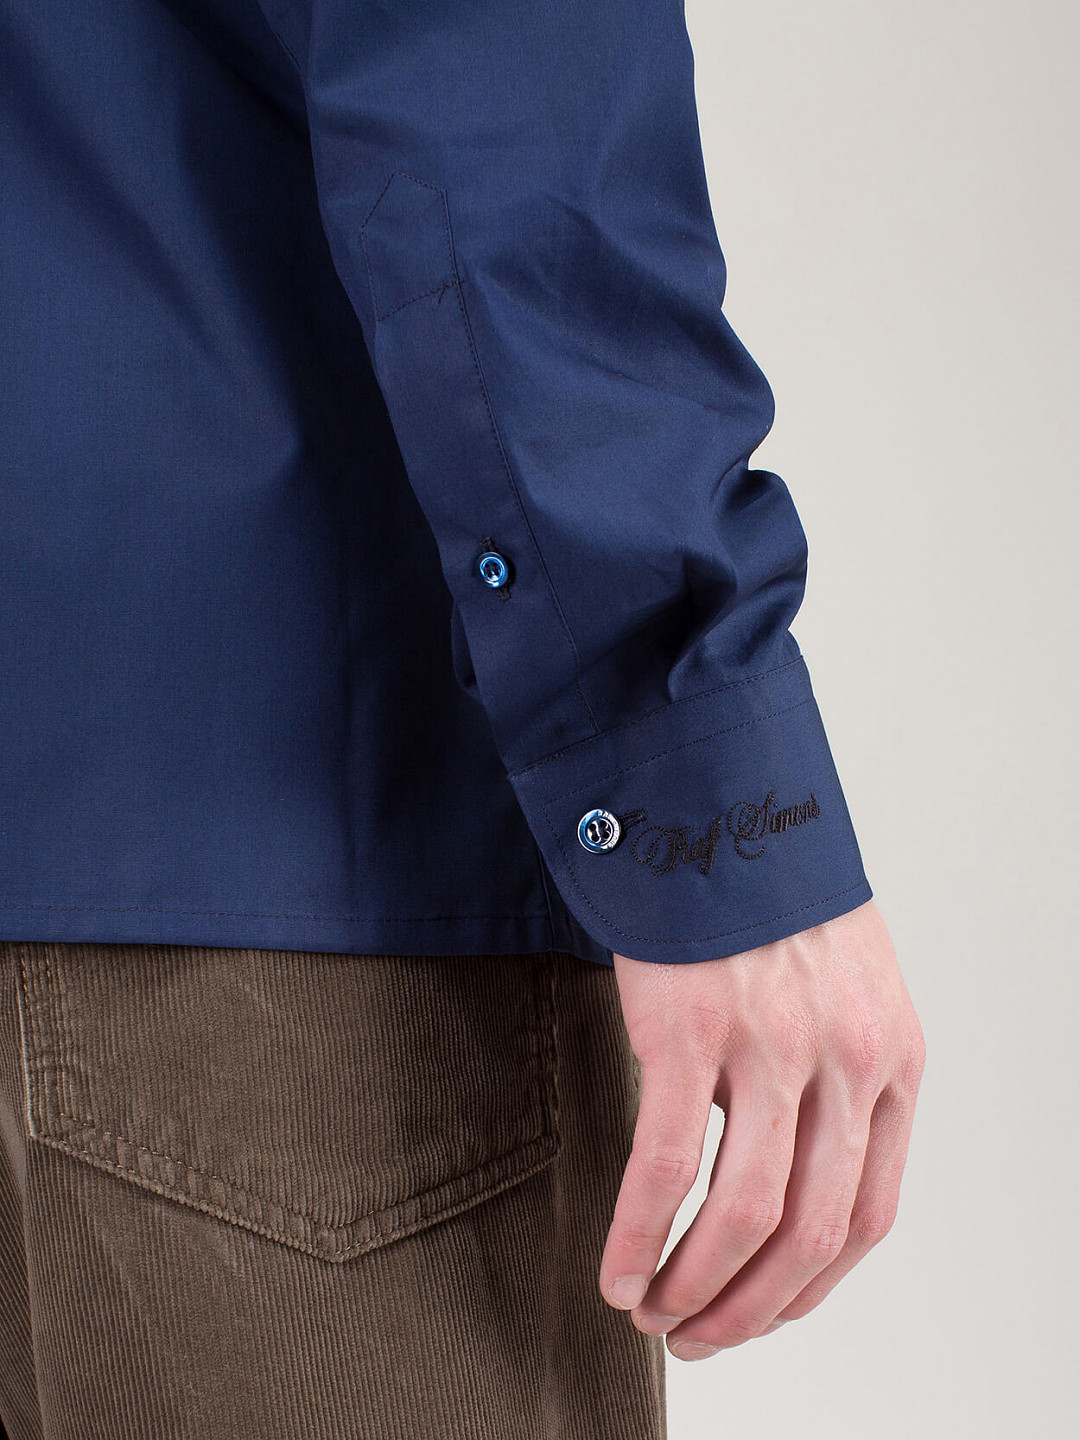 Slim Fit Shirt Embroidery Cuff